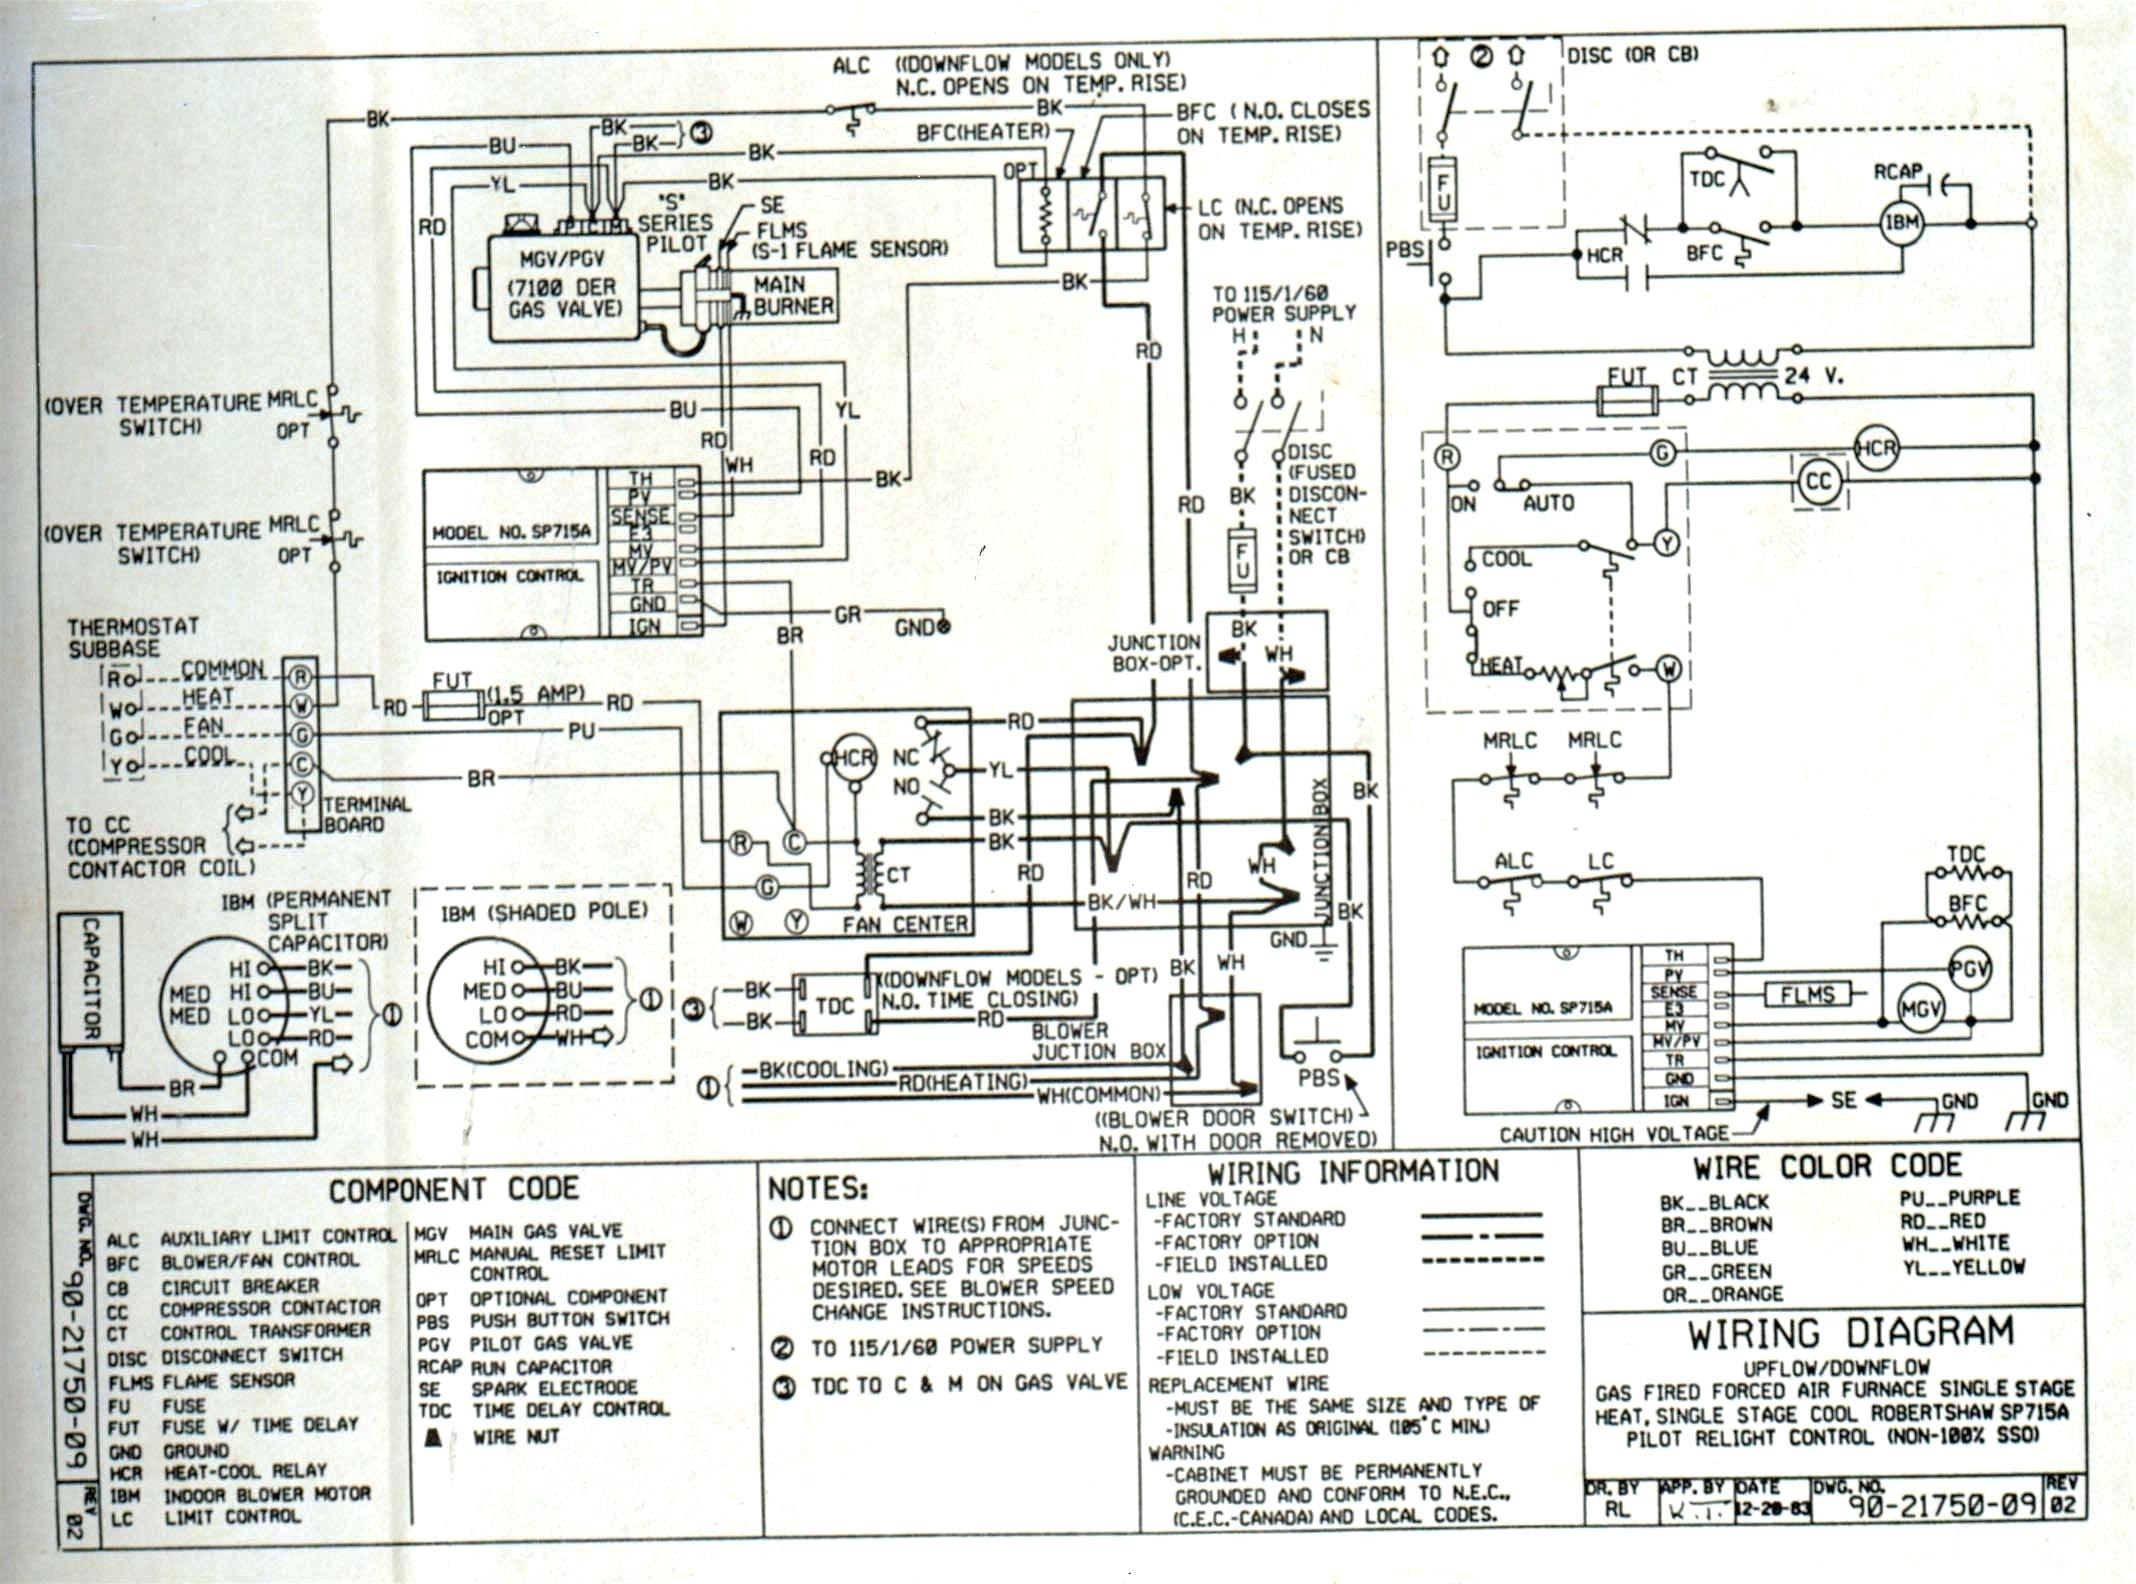 asco series 300 wiring diagram Download-Asco Series 300 Wiring Diagram Luxury Hvac thermostat Wiring Diagram Carrier Wonderful Advent Air 3-s